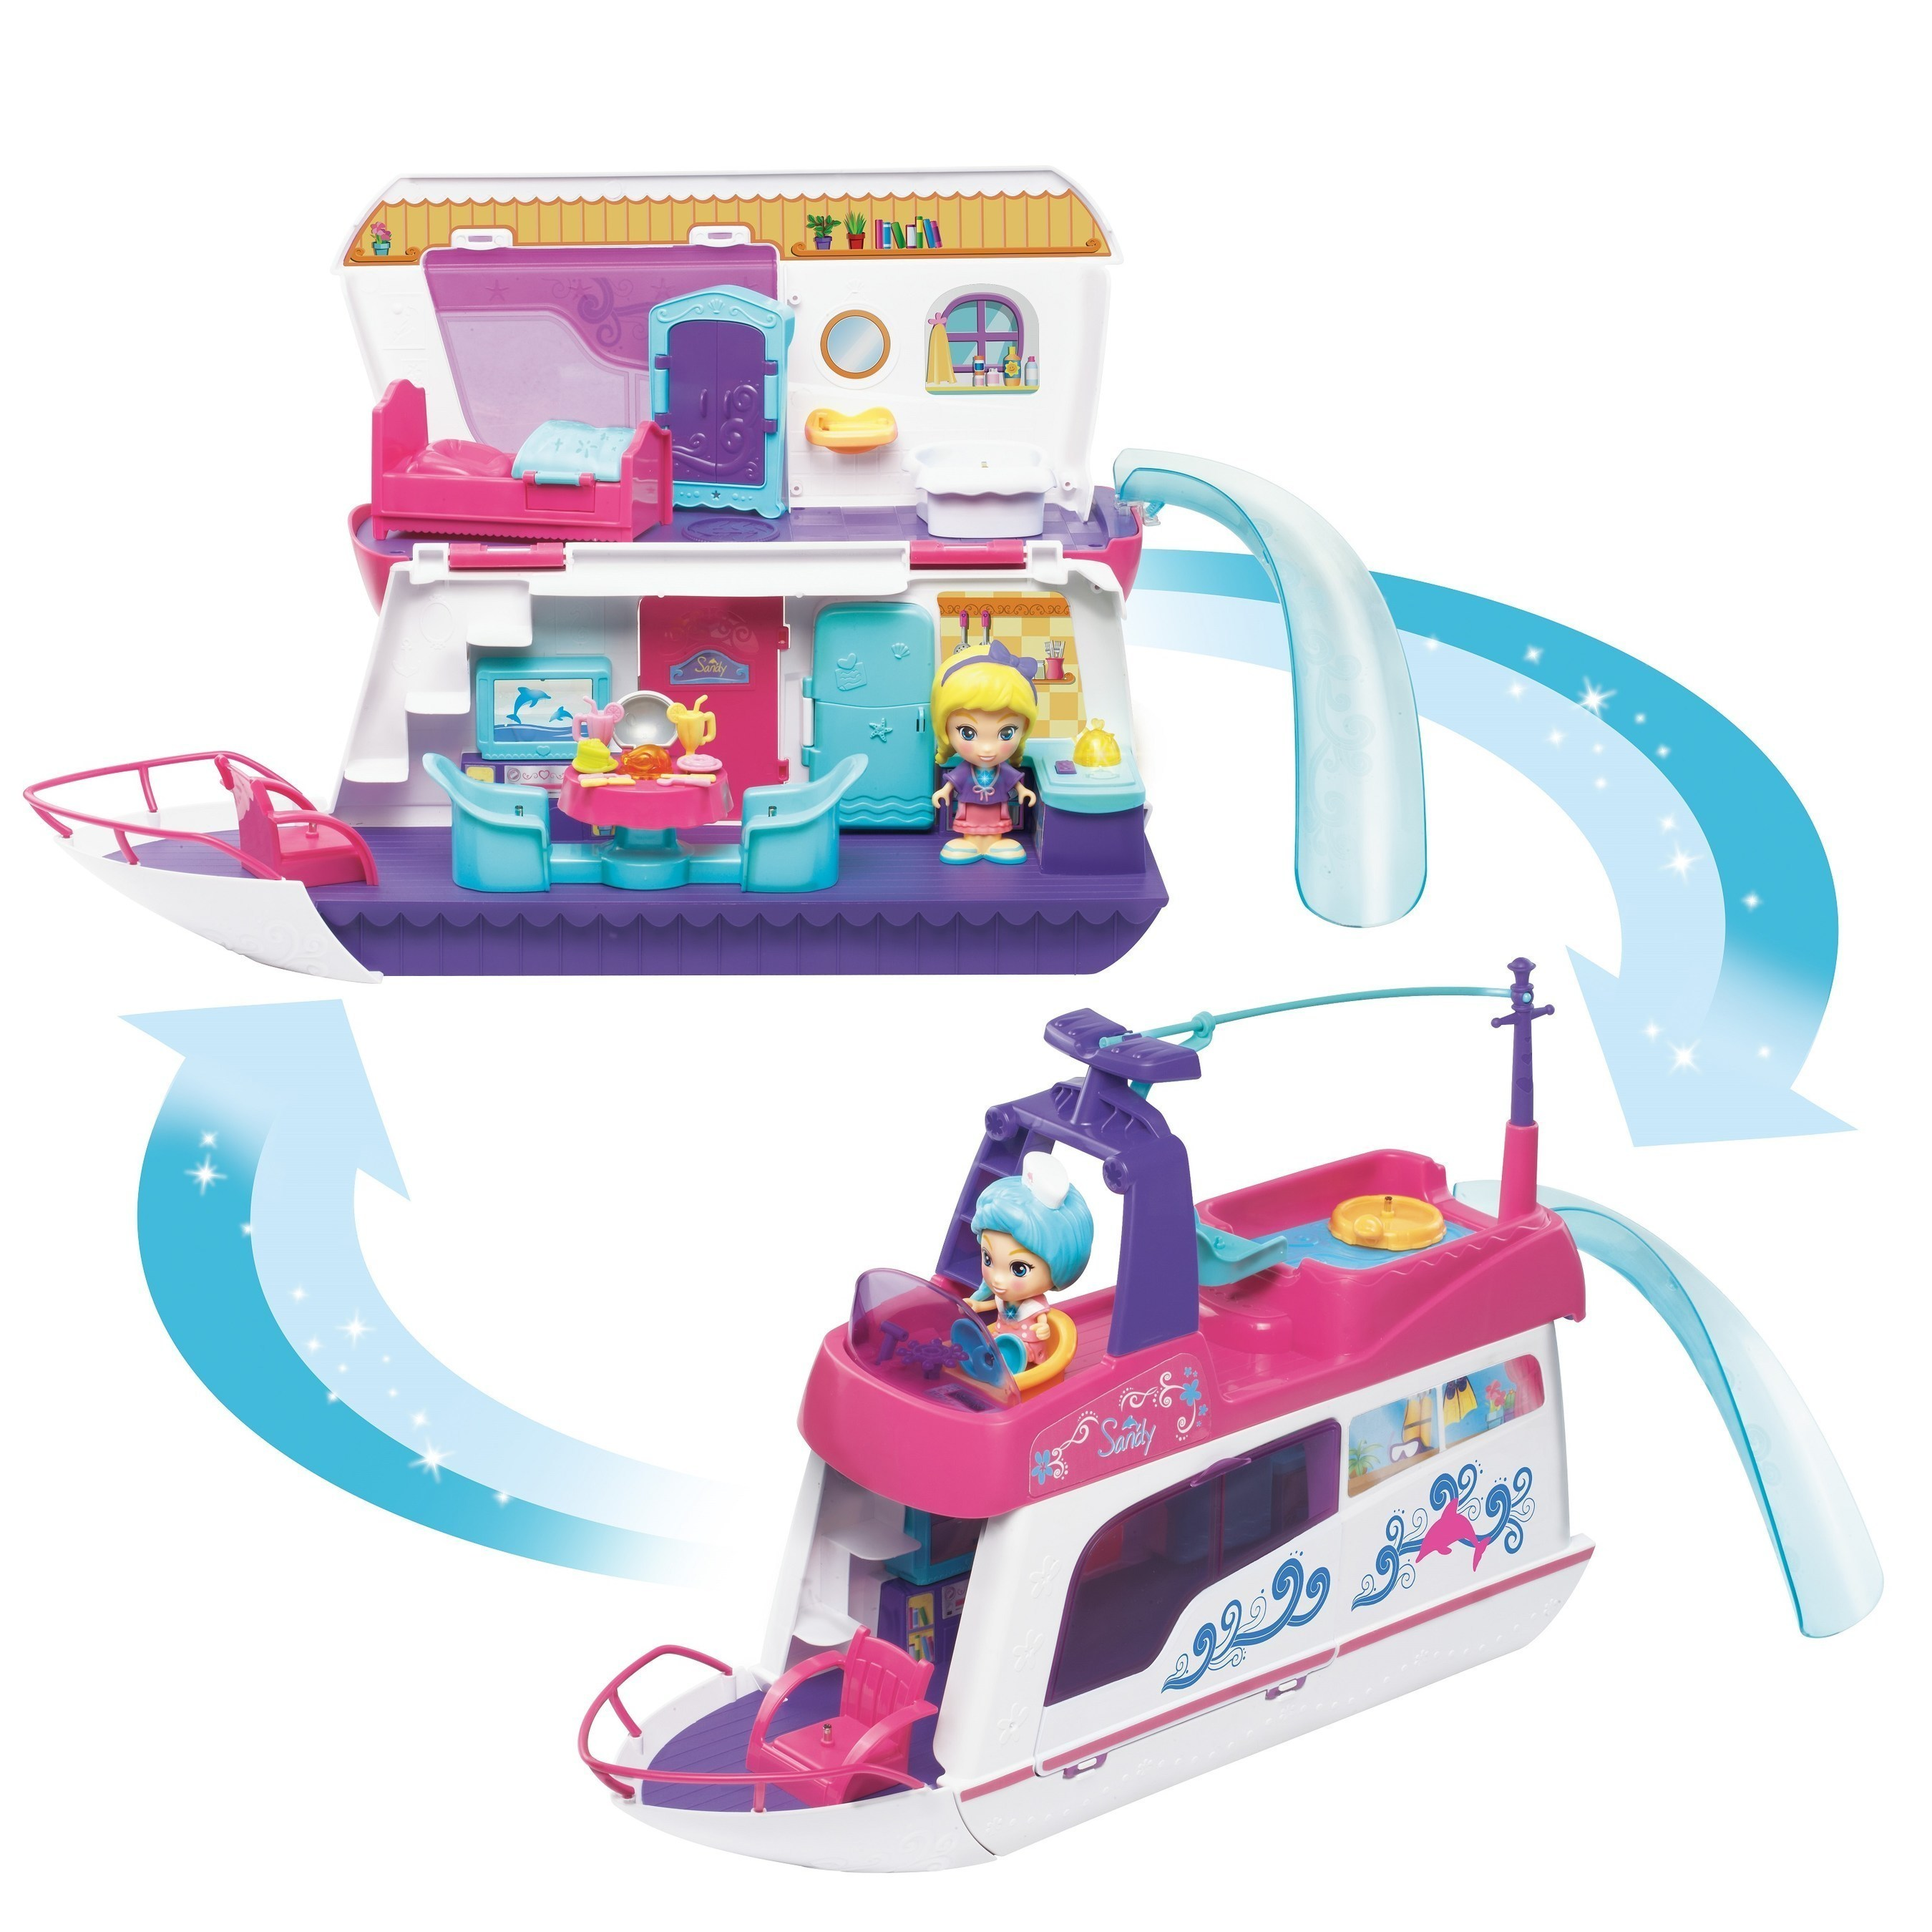 Let Your Dreams Shine! Award-Winning Flipsies Line by VTech' Available Now